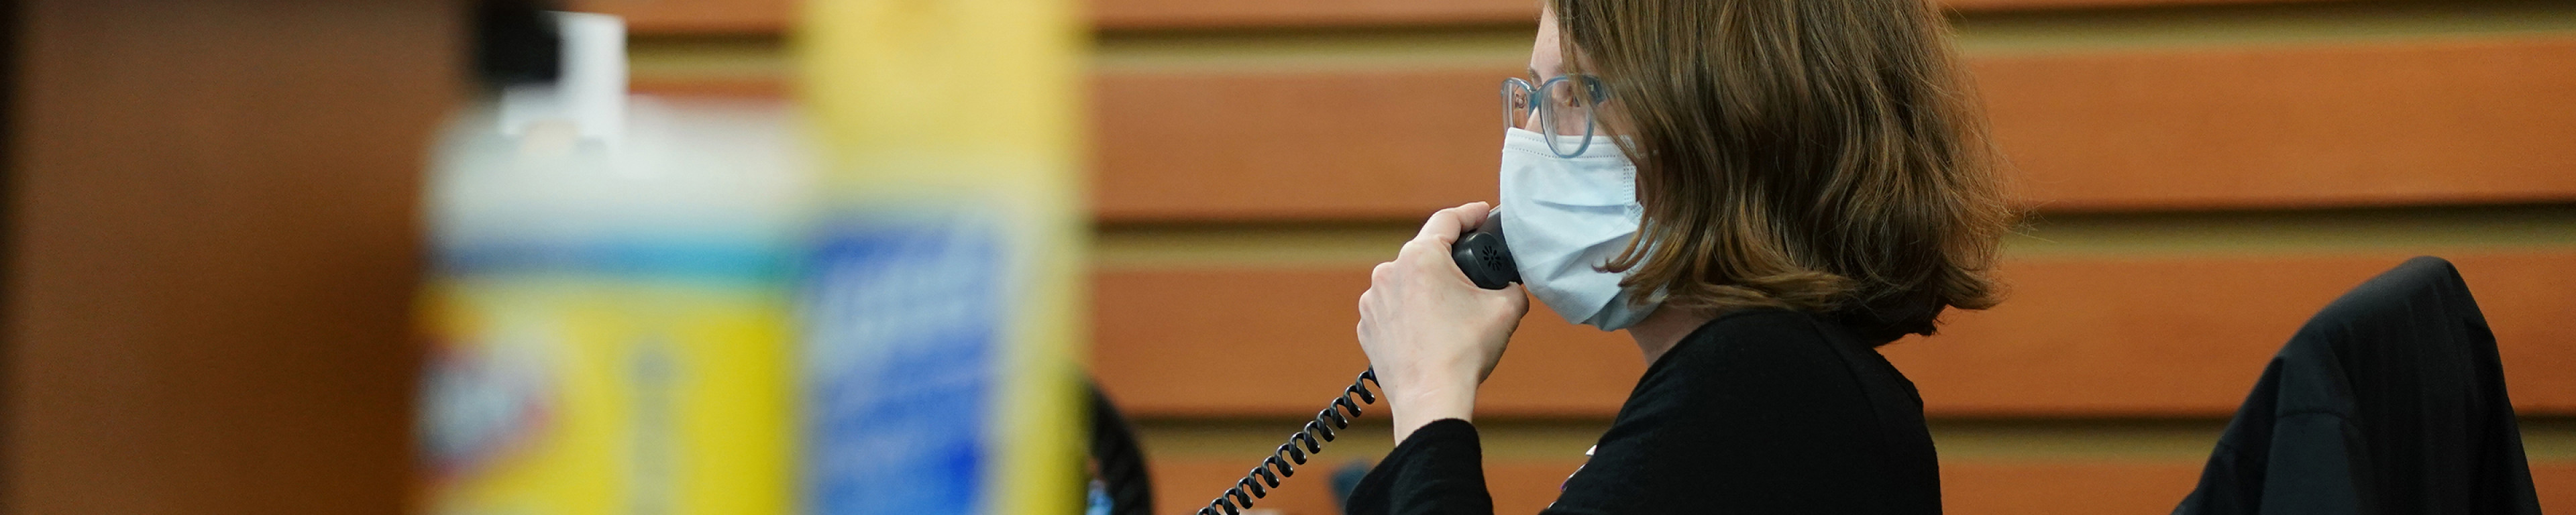 A woman wearing a mask on the phone near some cleaning supplies.